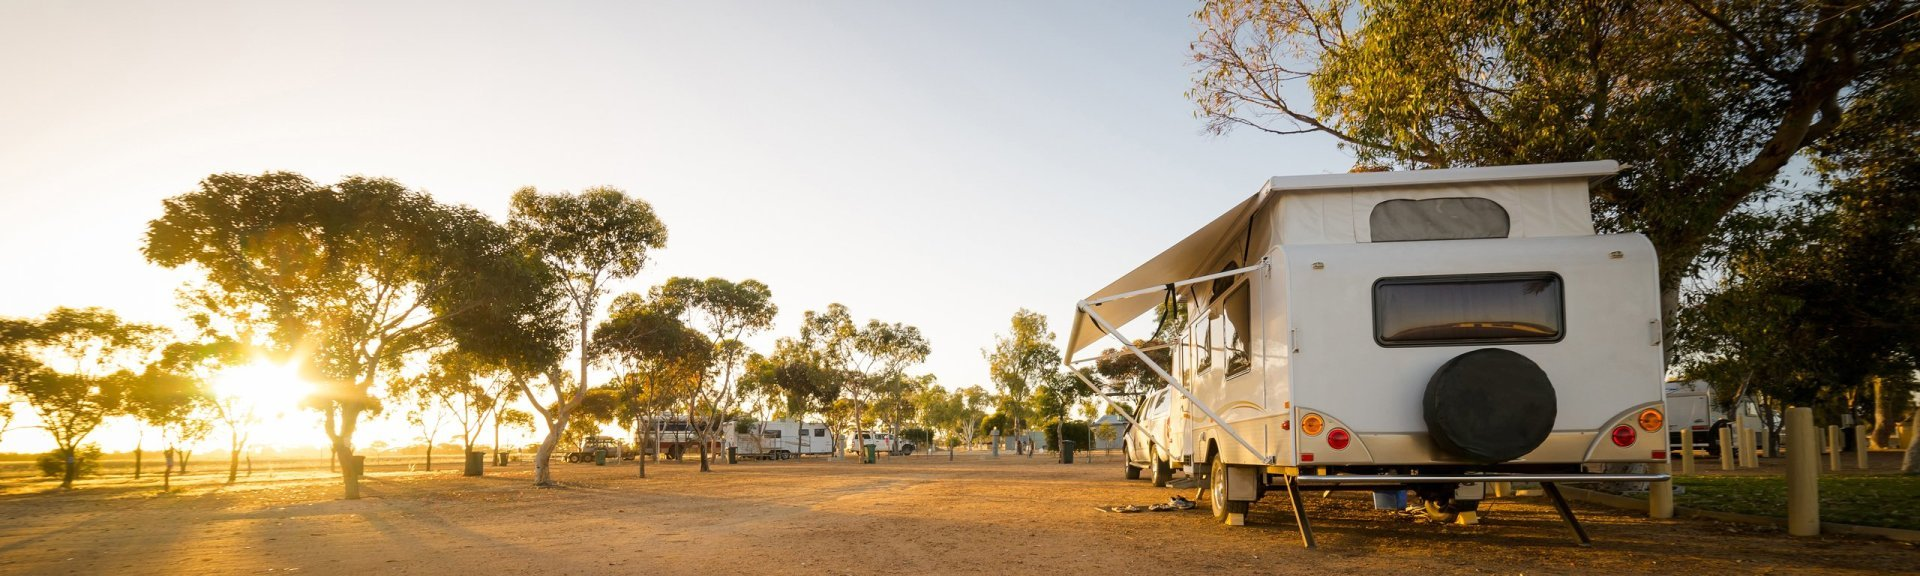 Caravans and camping in Kakadu